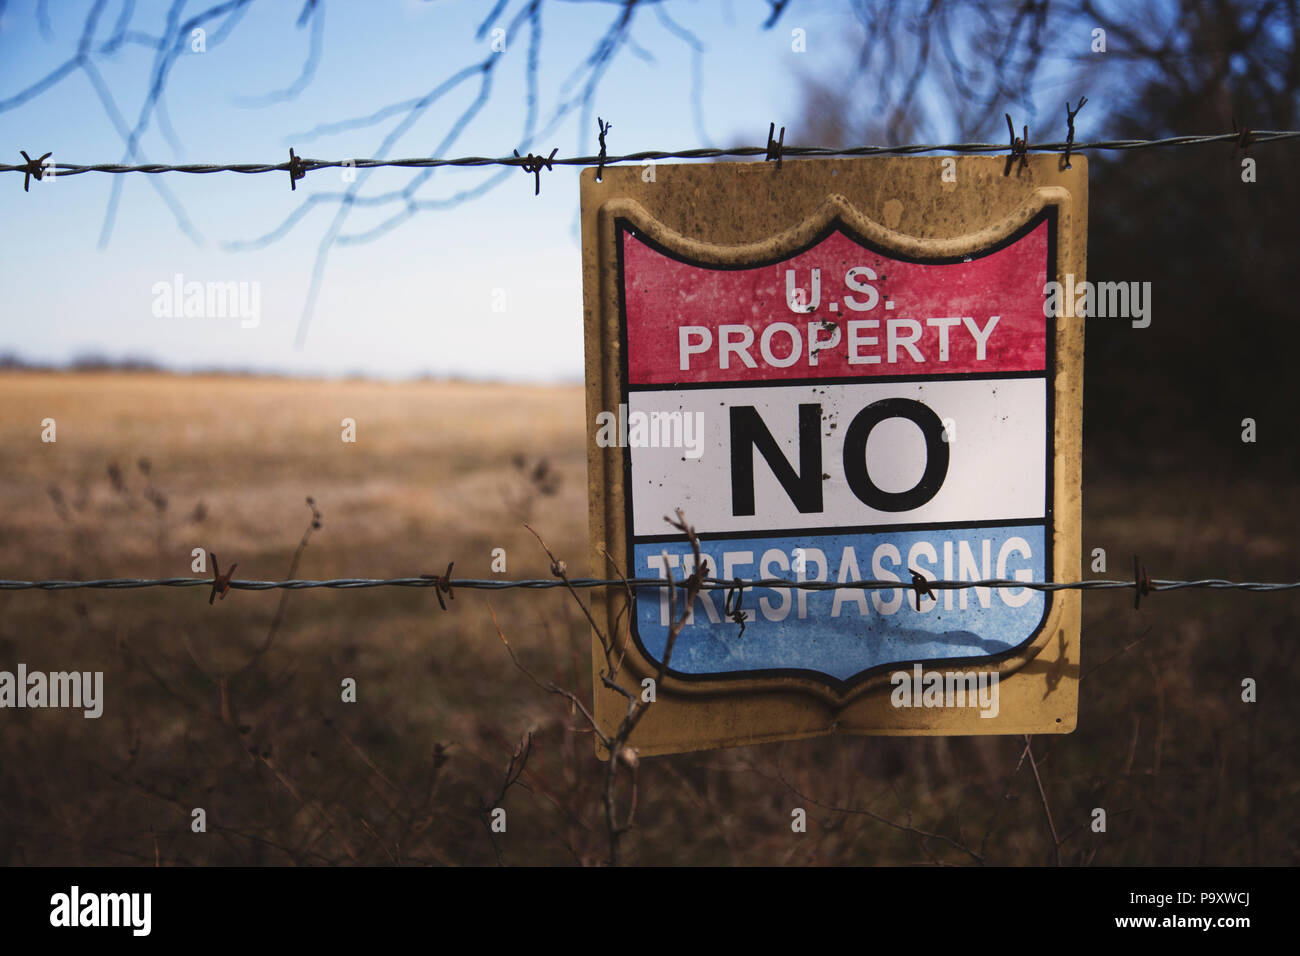 caution sign for trespassers stock photo 212647026 alamy